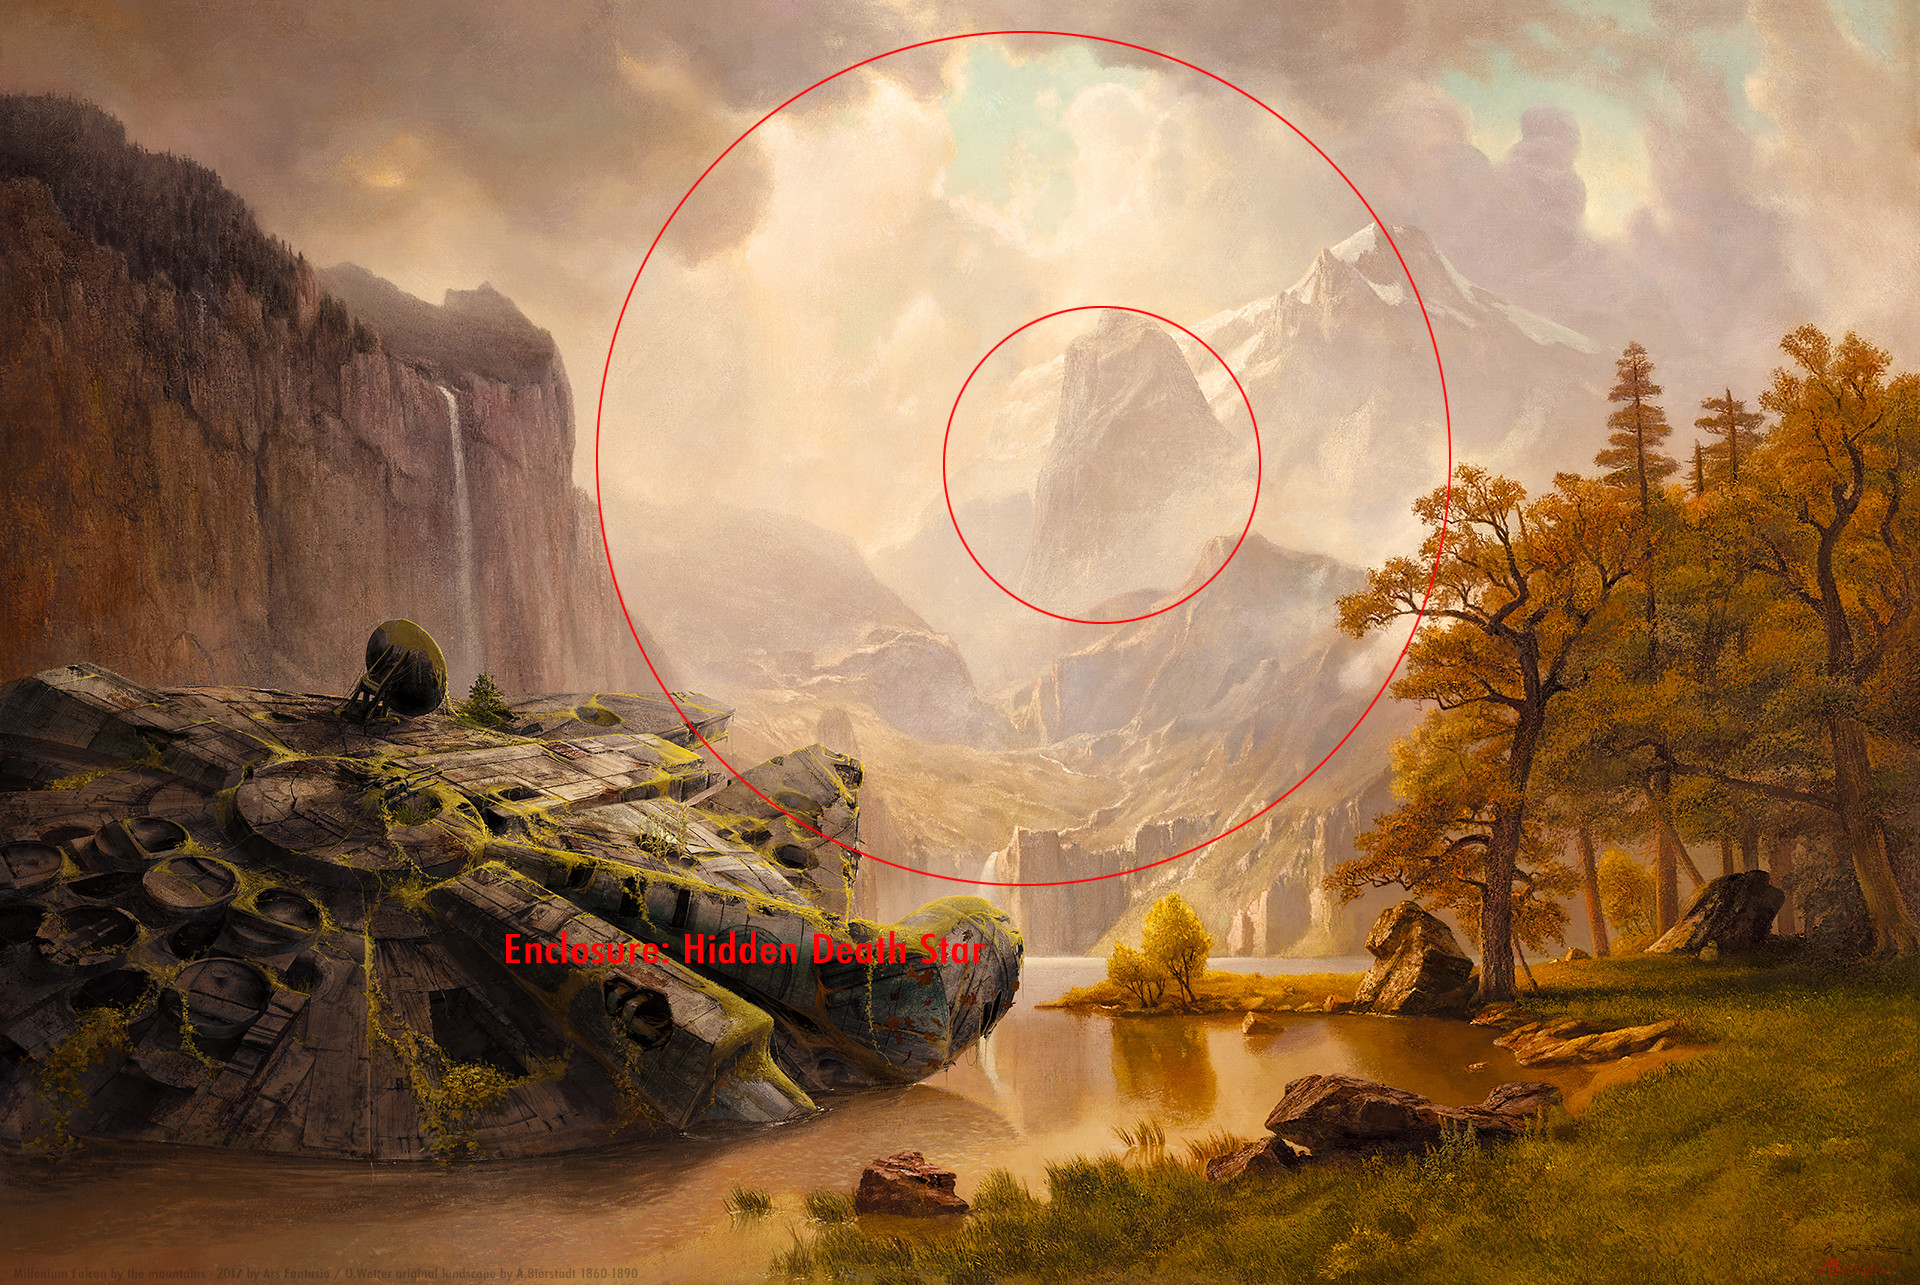 Oliver wetter composition findings death star 1920x1200px watermarked web abandoned millenium falcon at sierra nevada